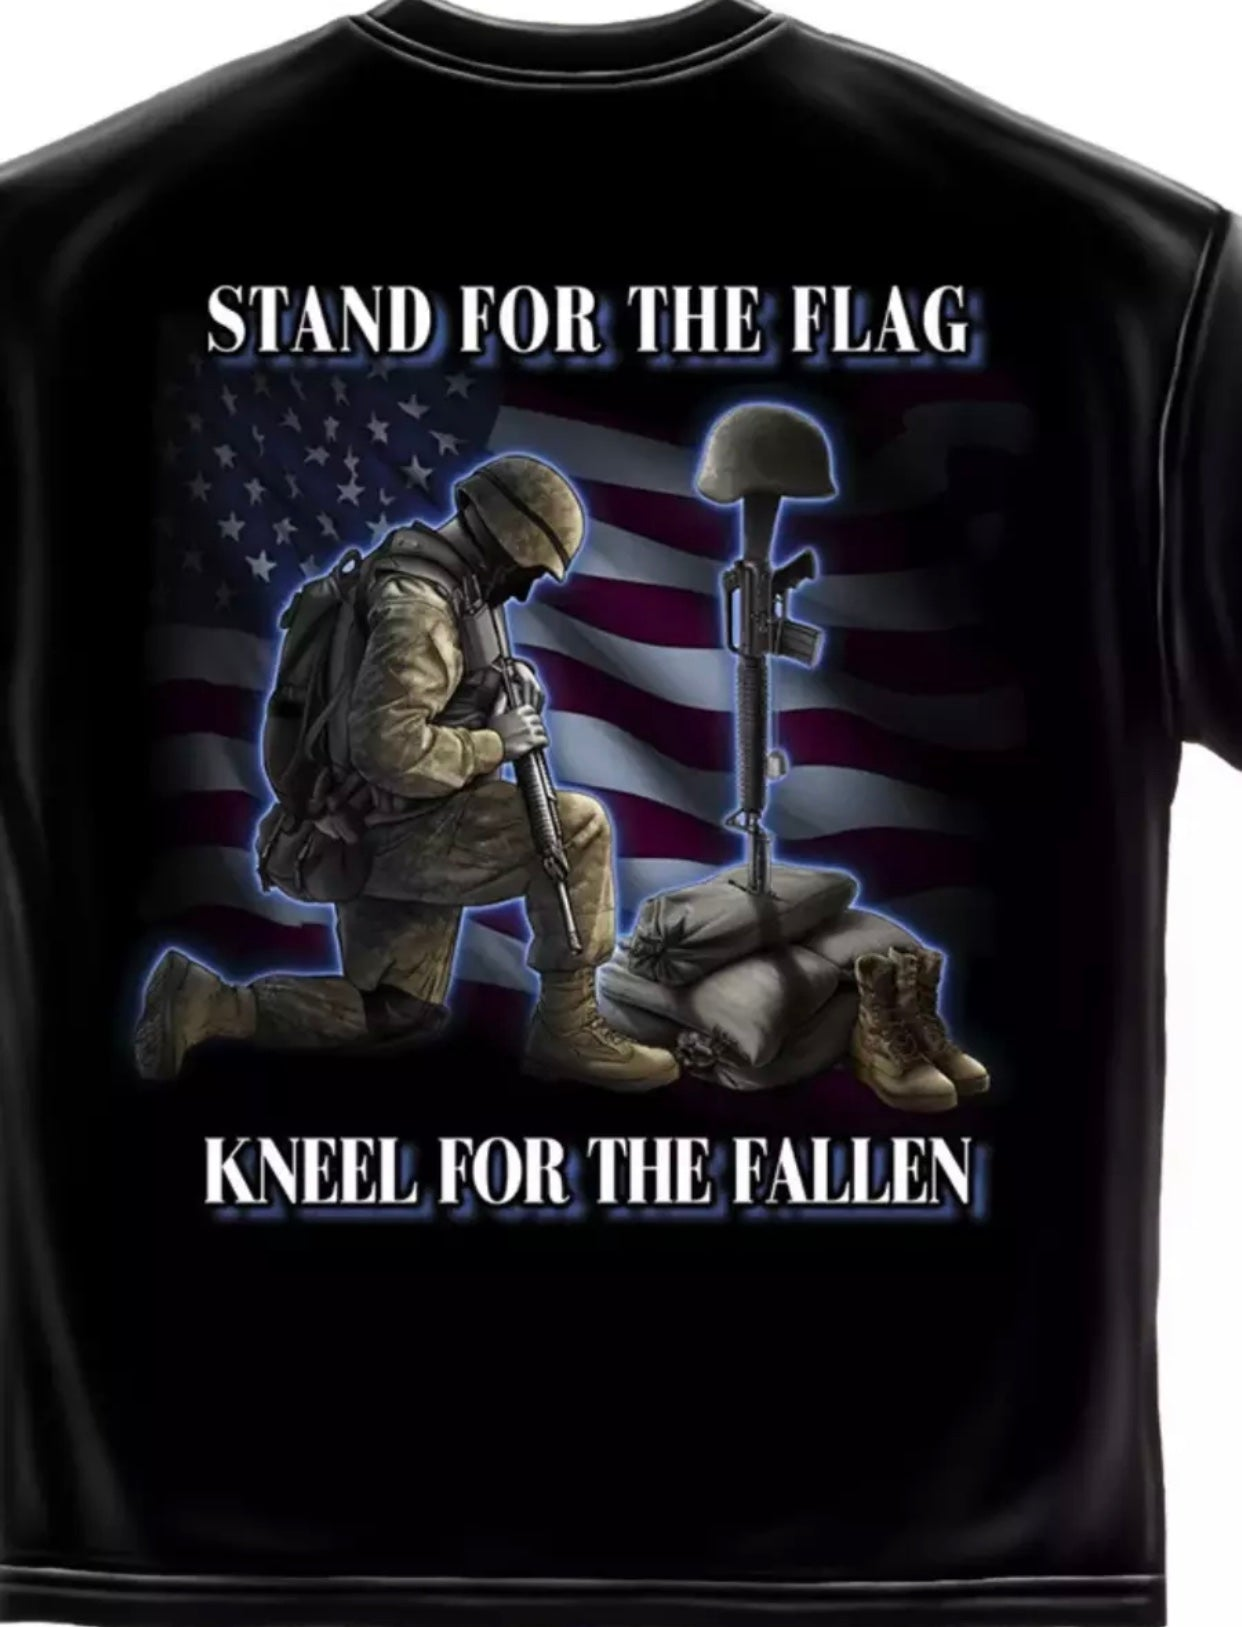 Stand For The Flag Kneel For The Fallen - The Wall Kids, Inc.